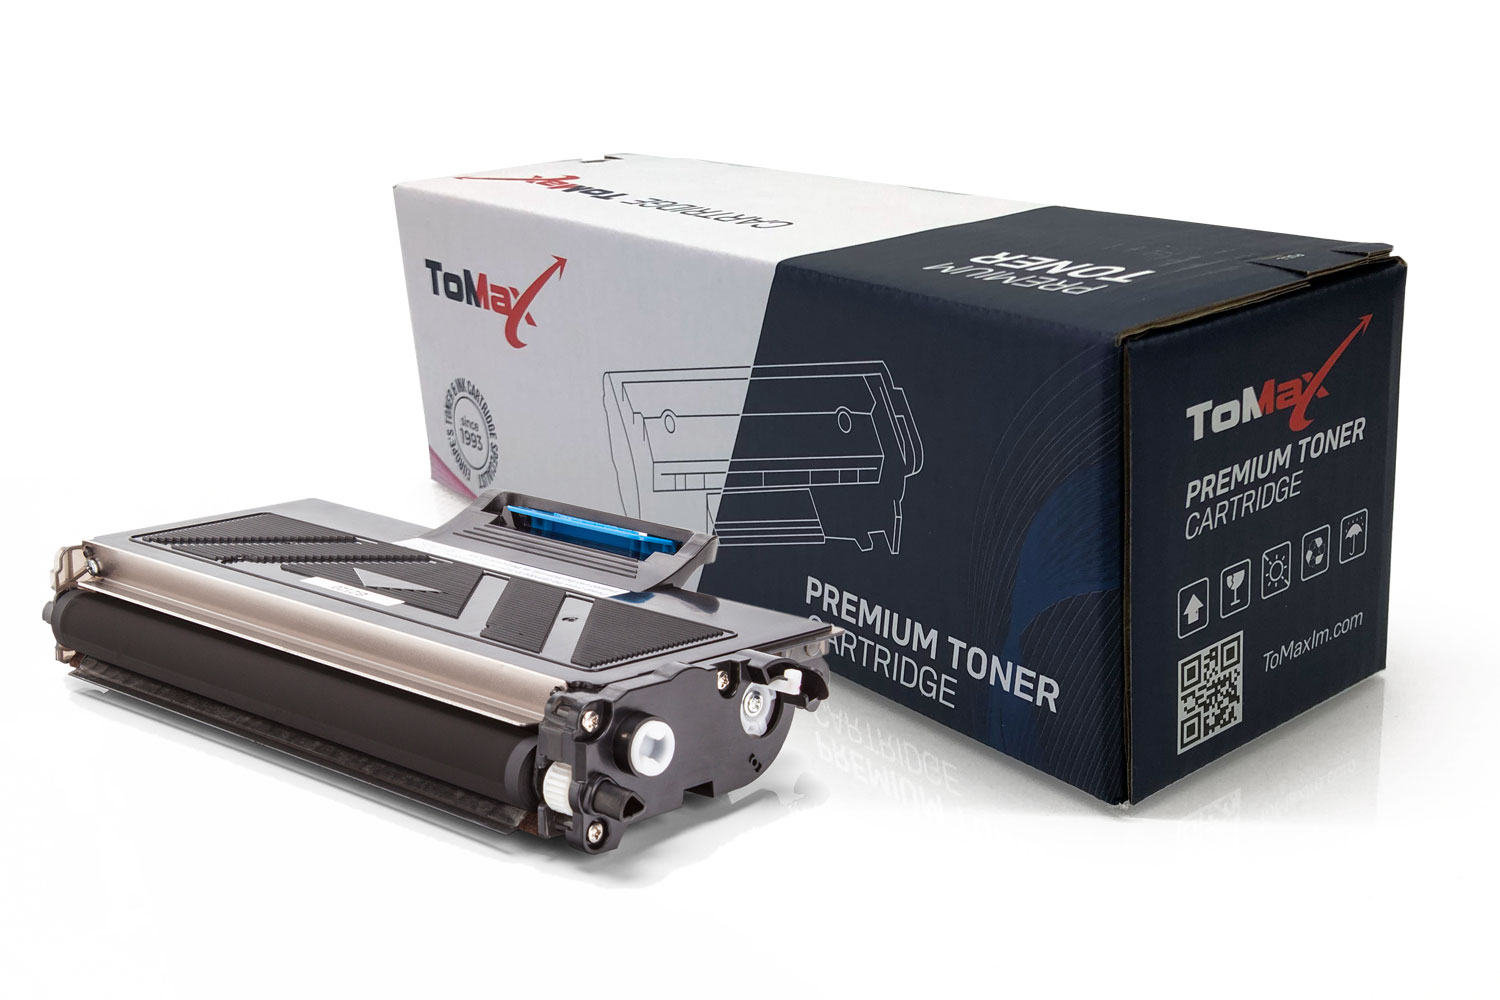 ToMax Premium Toner Cartridge replaces HP CC531A / 304A Cyan